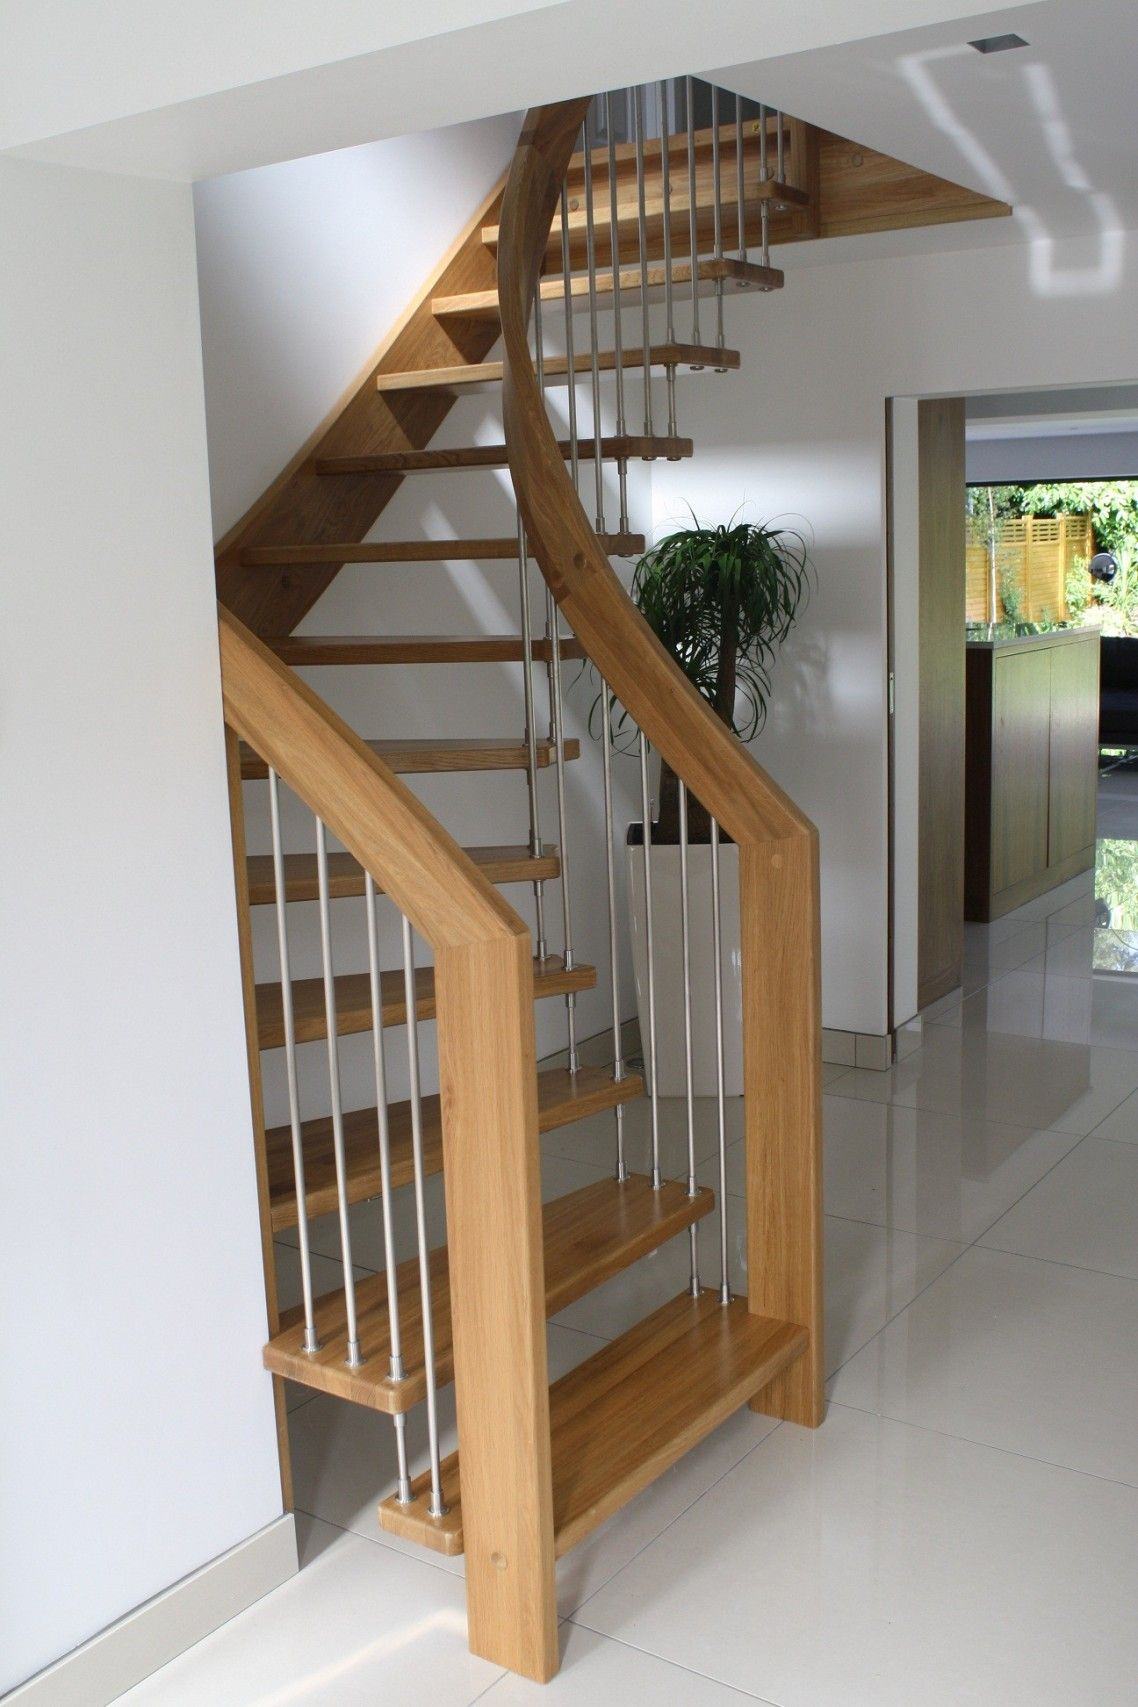 Alluring Design Ideas Of Small Space Staircase With Brown Wooden Treads And Handrails Also Stainle Small Space Staircase Small Staircase Space Saving Staircase